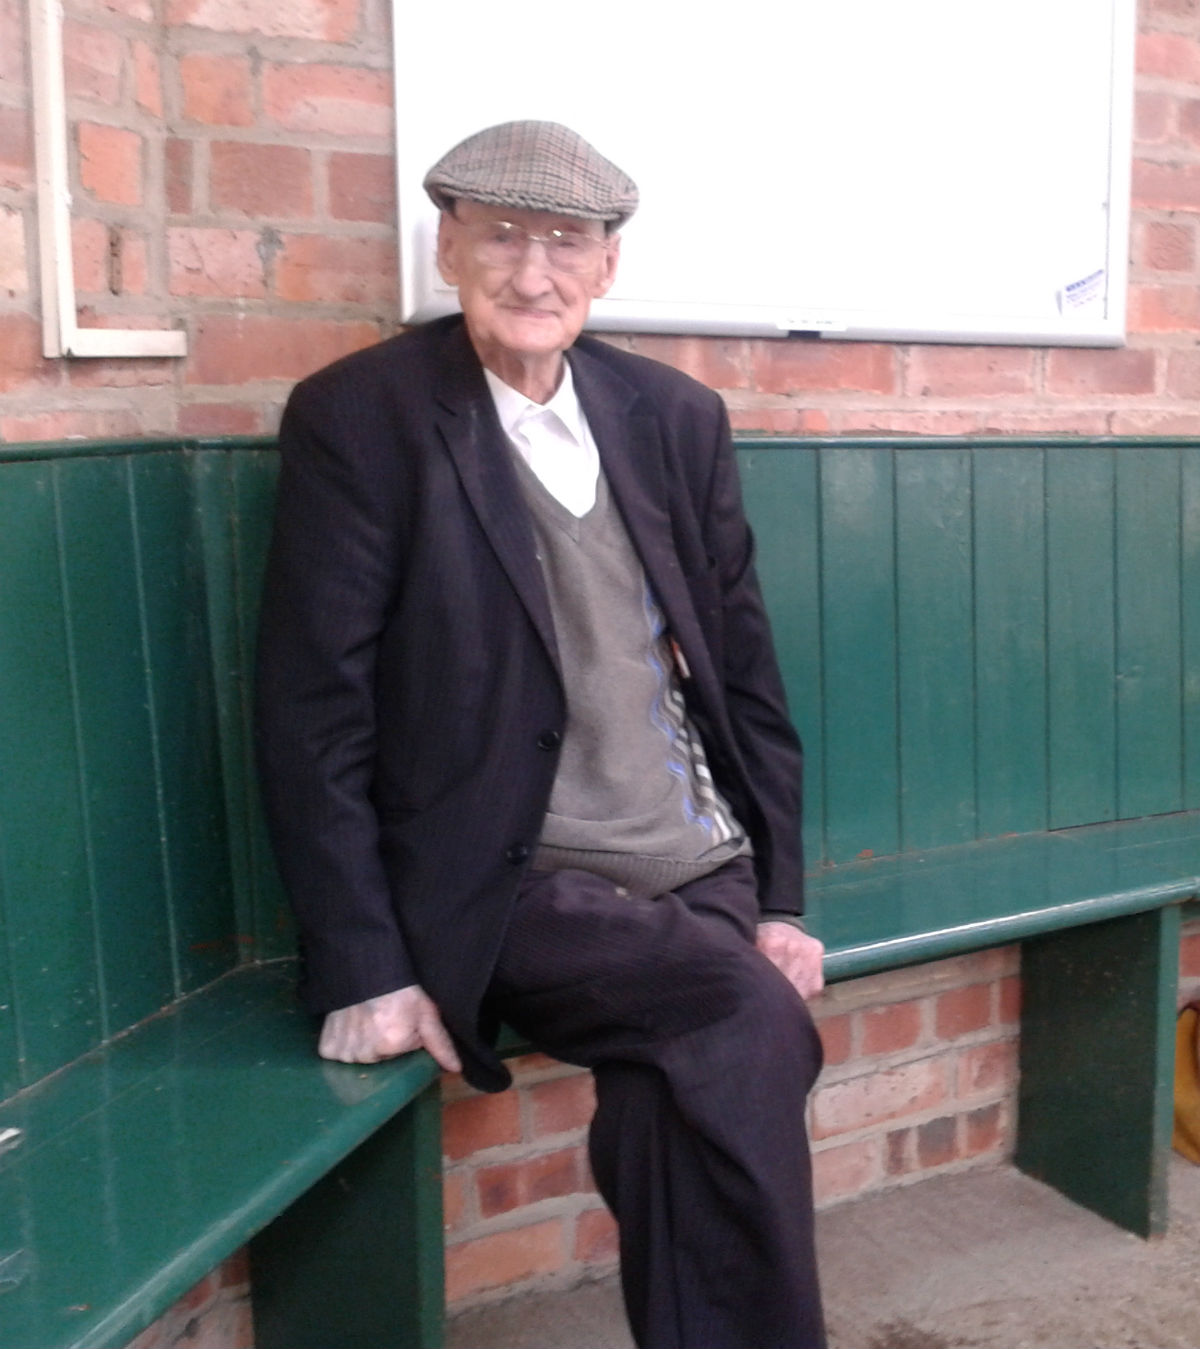 Seamer resident Walter Bainbridge, who celebrated his 100th birthday last year, will be cutting the ribbon on Seamer's renovated village hall